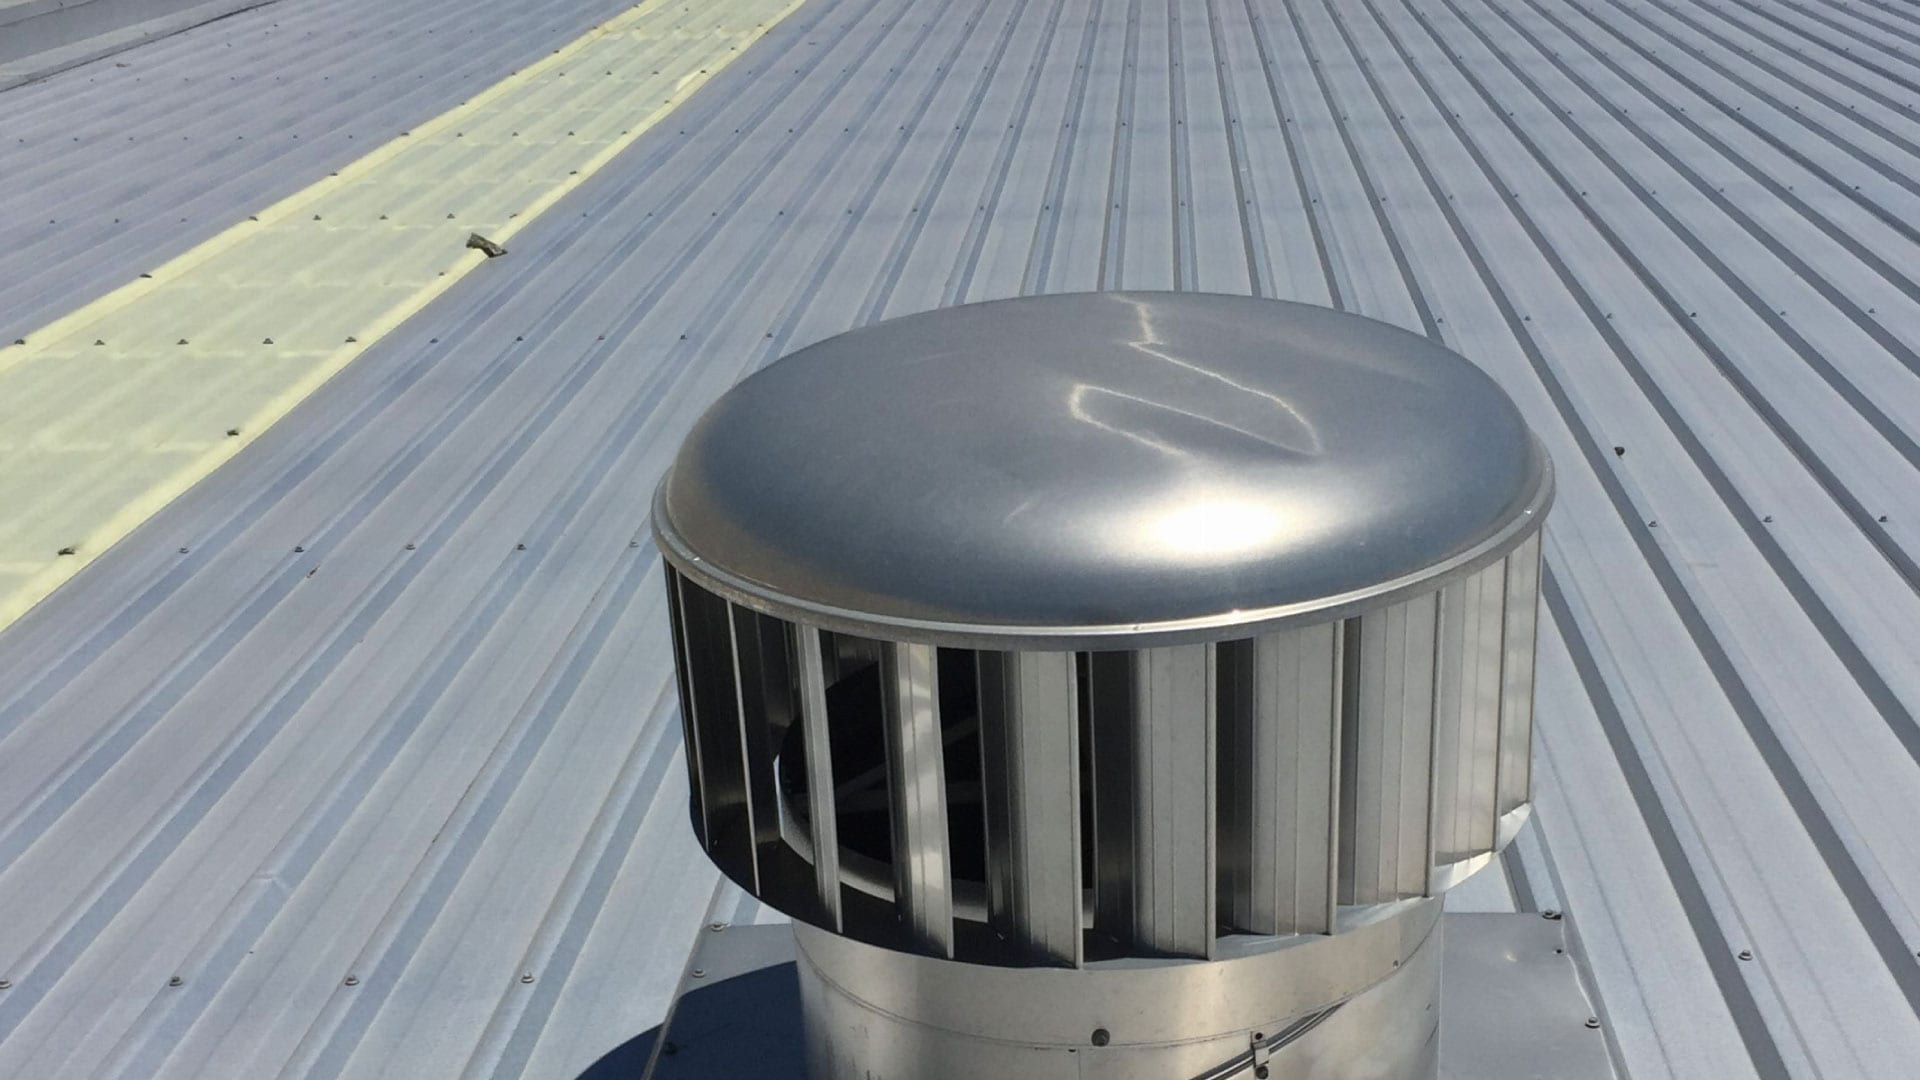 Commercial Roof Ventilators Roof Vents Australia Roof